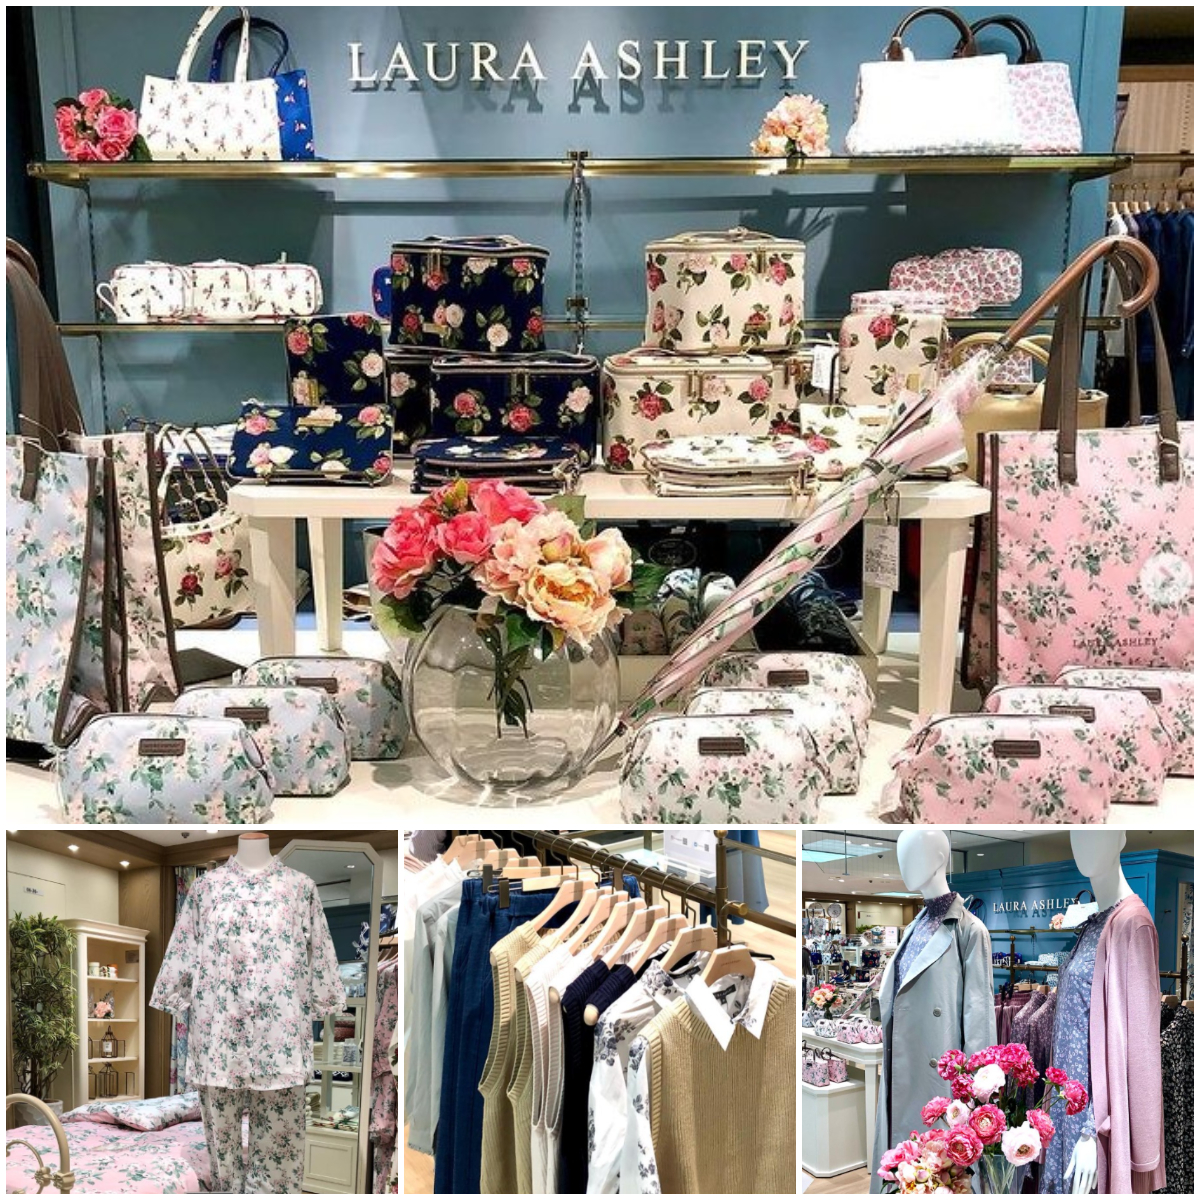 『LAURA ASHLEY』オープン